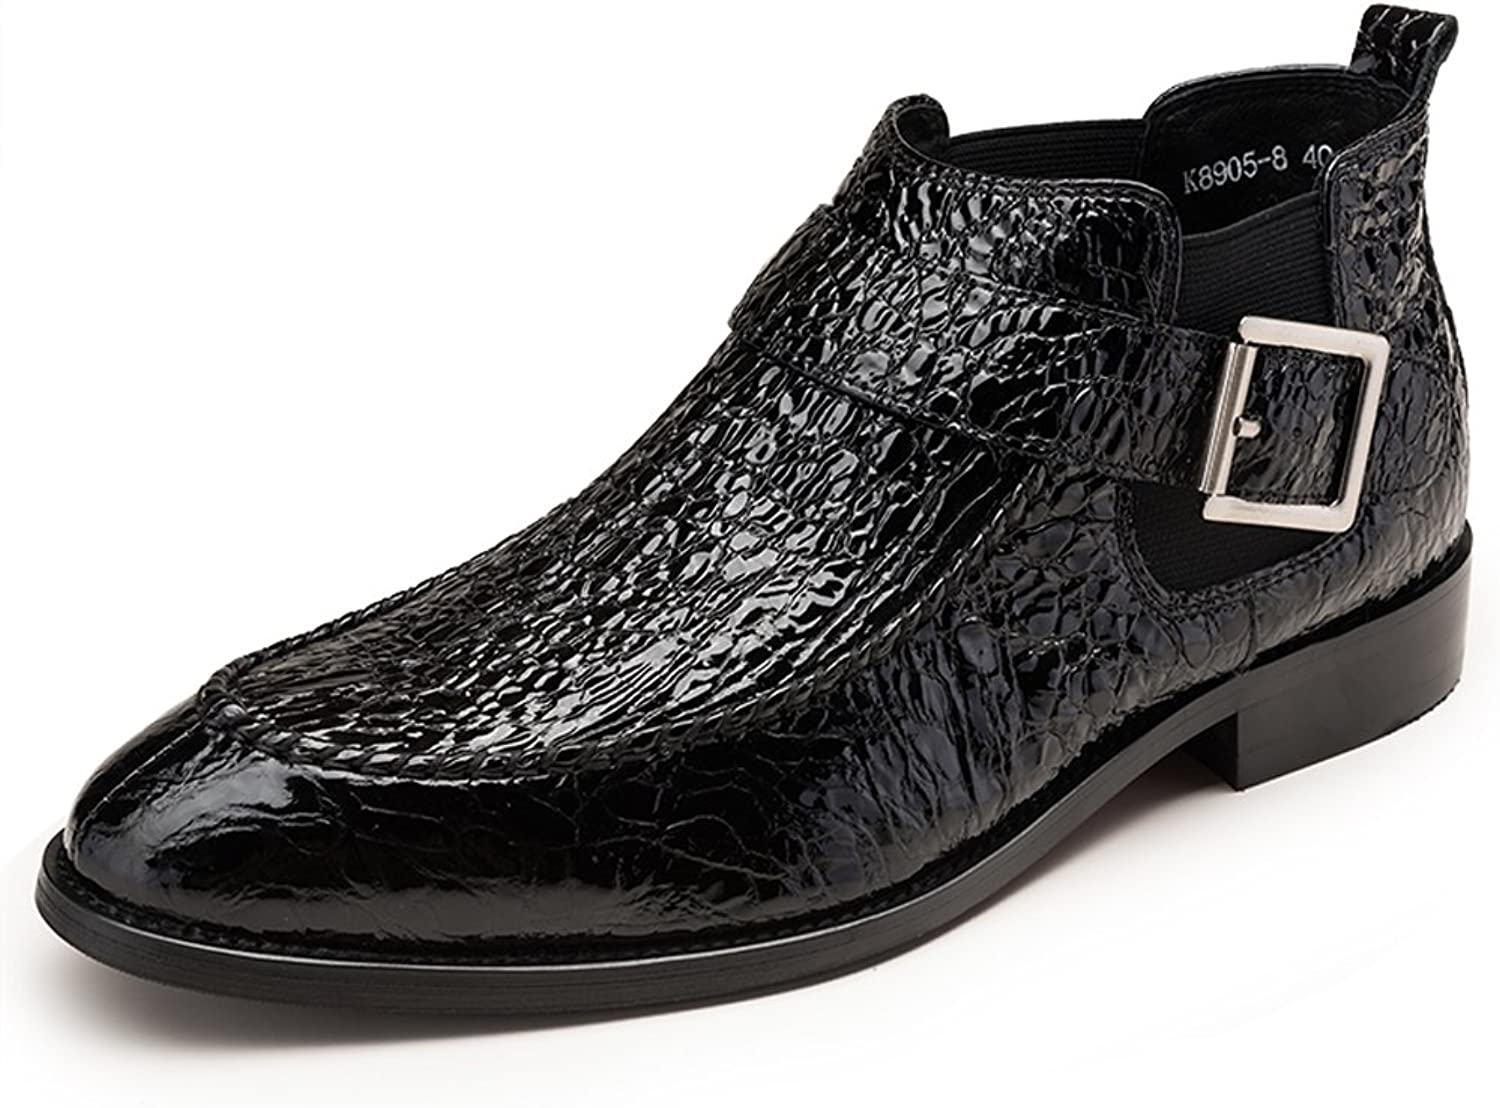 FARYM Men's Alligator Buckle Trim Chelsea Boots in Leather